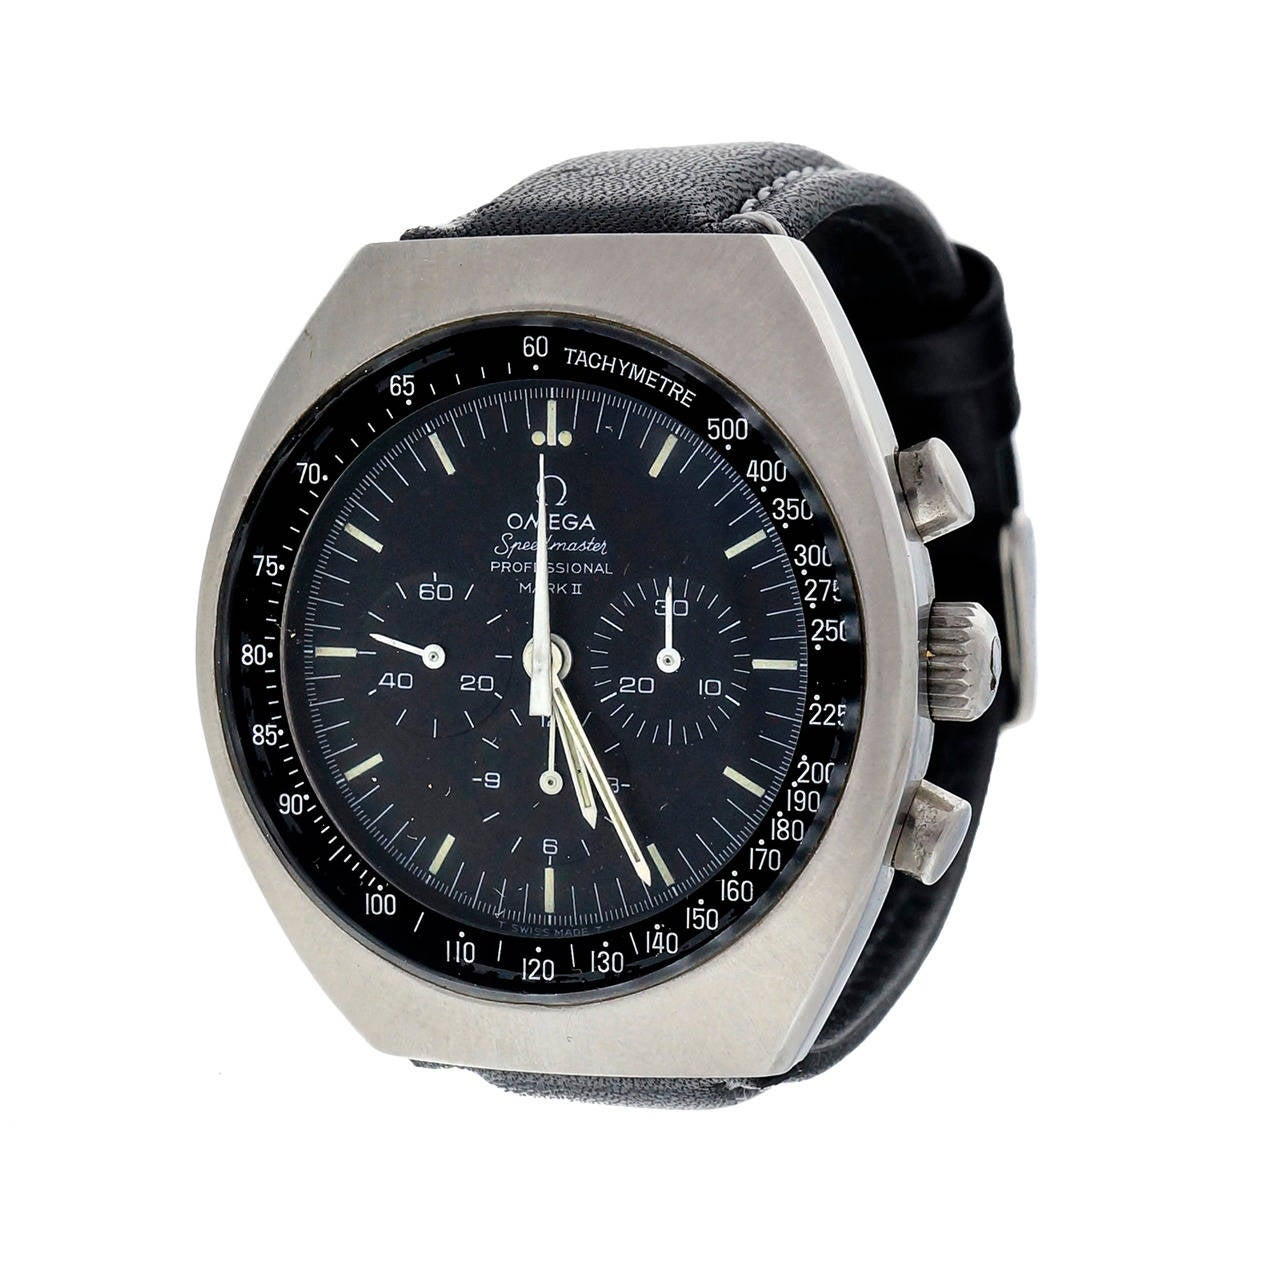 Omega Stainless Steel Speedmaster Mark II Chronograph Wristwatch For Sale